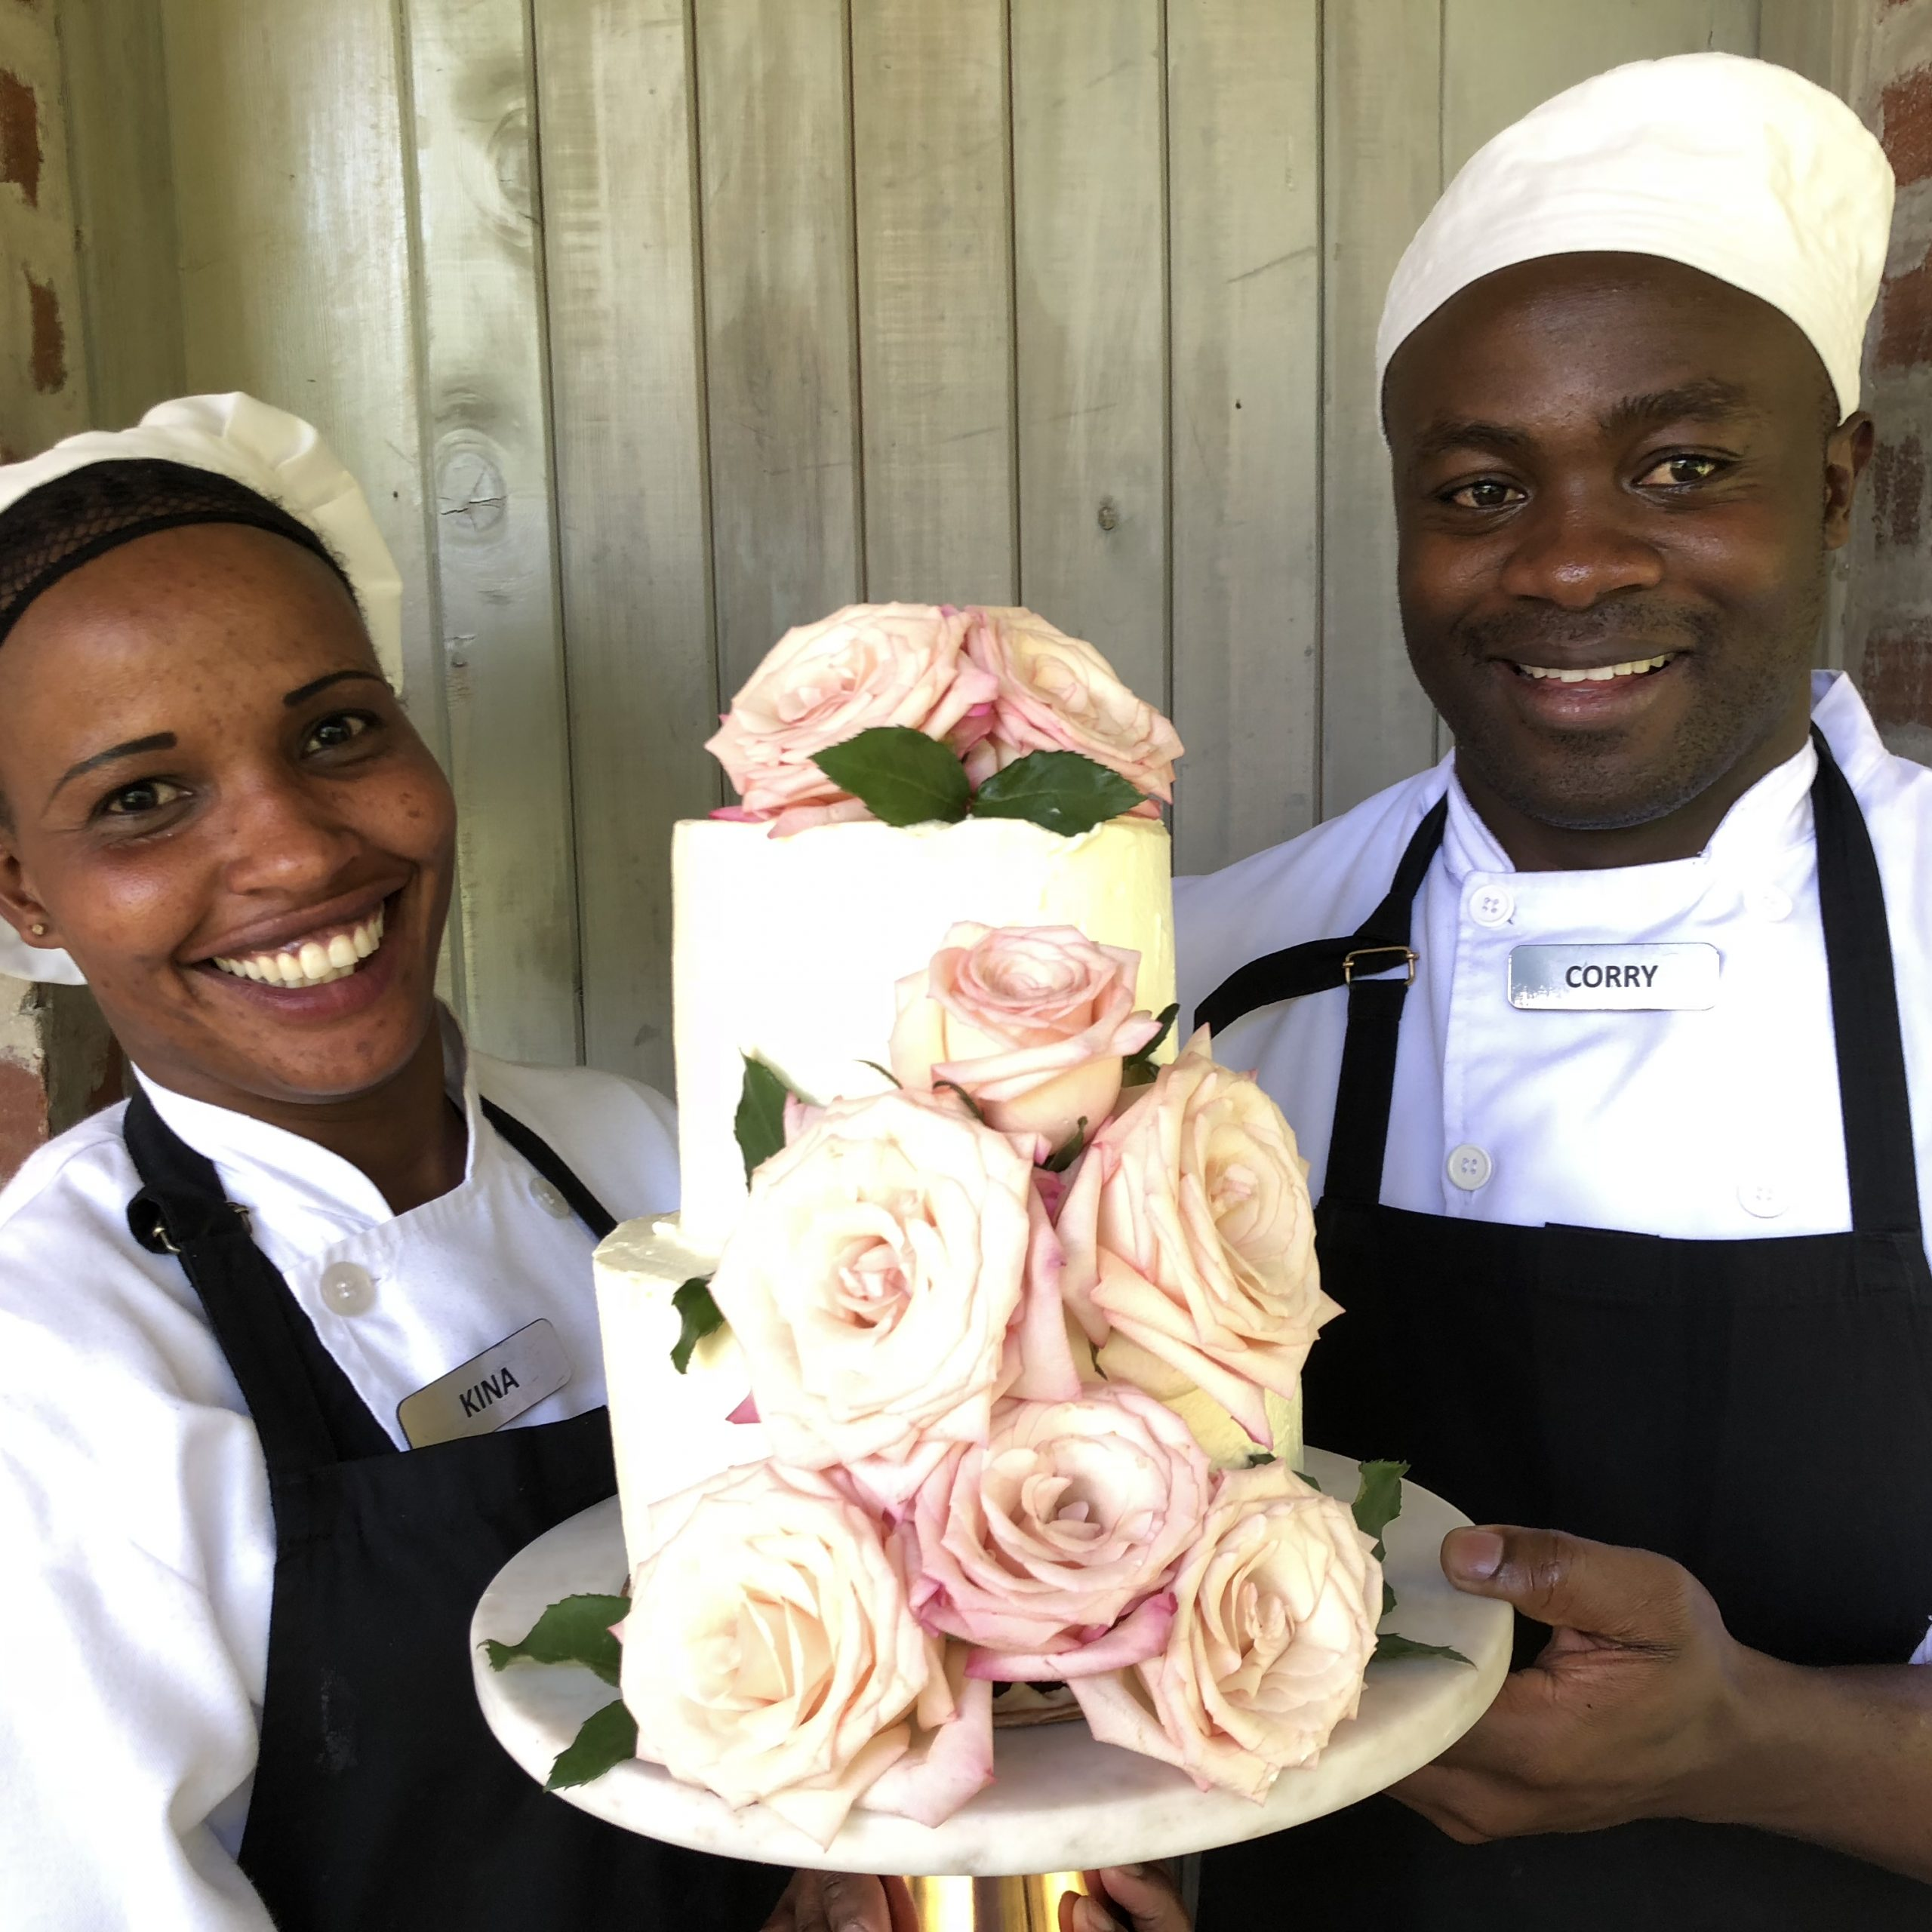 Angama pastry chefs preparing for the wedding cake